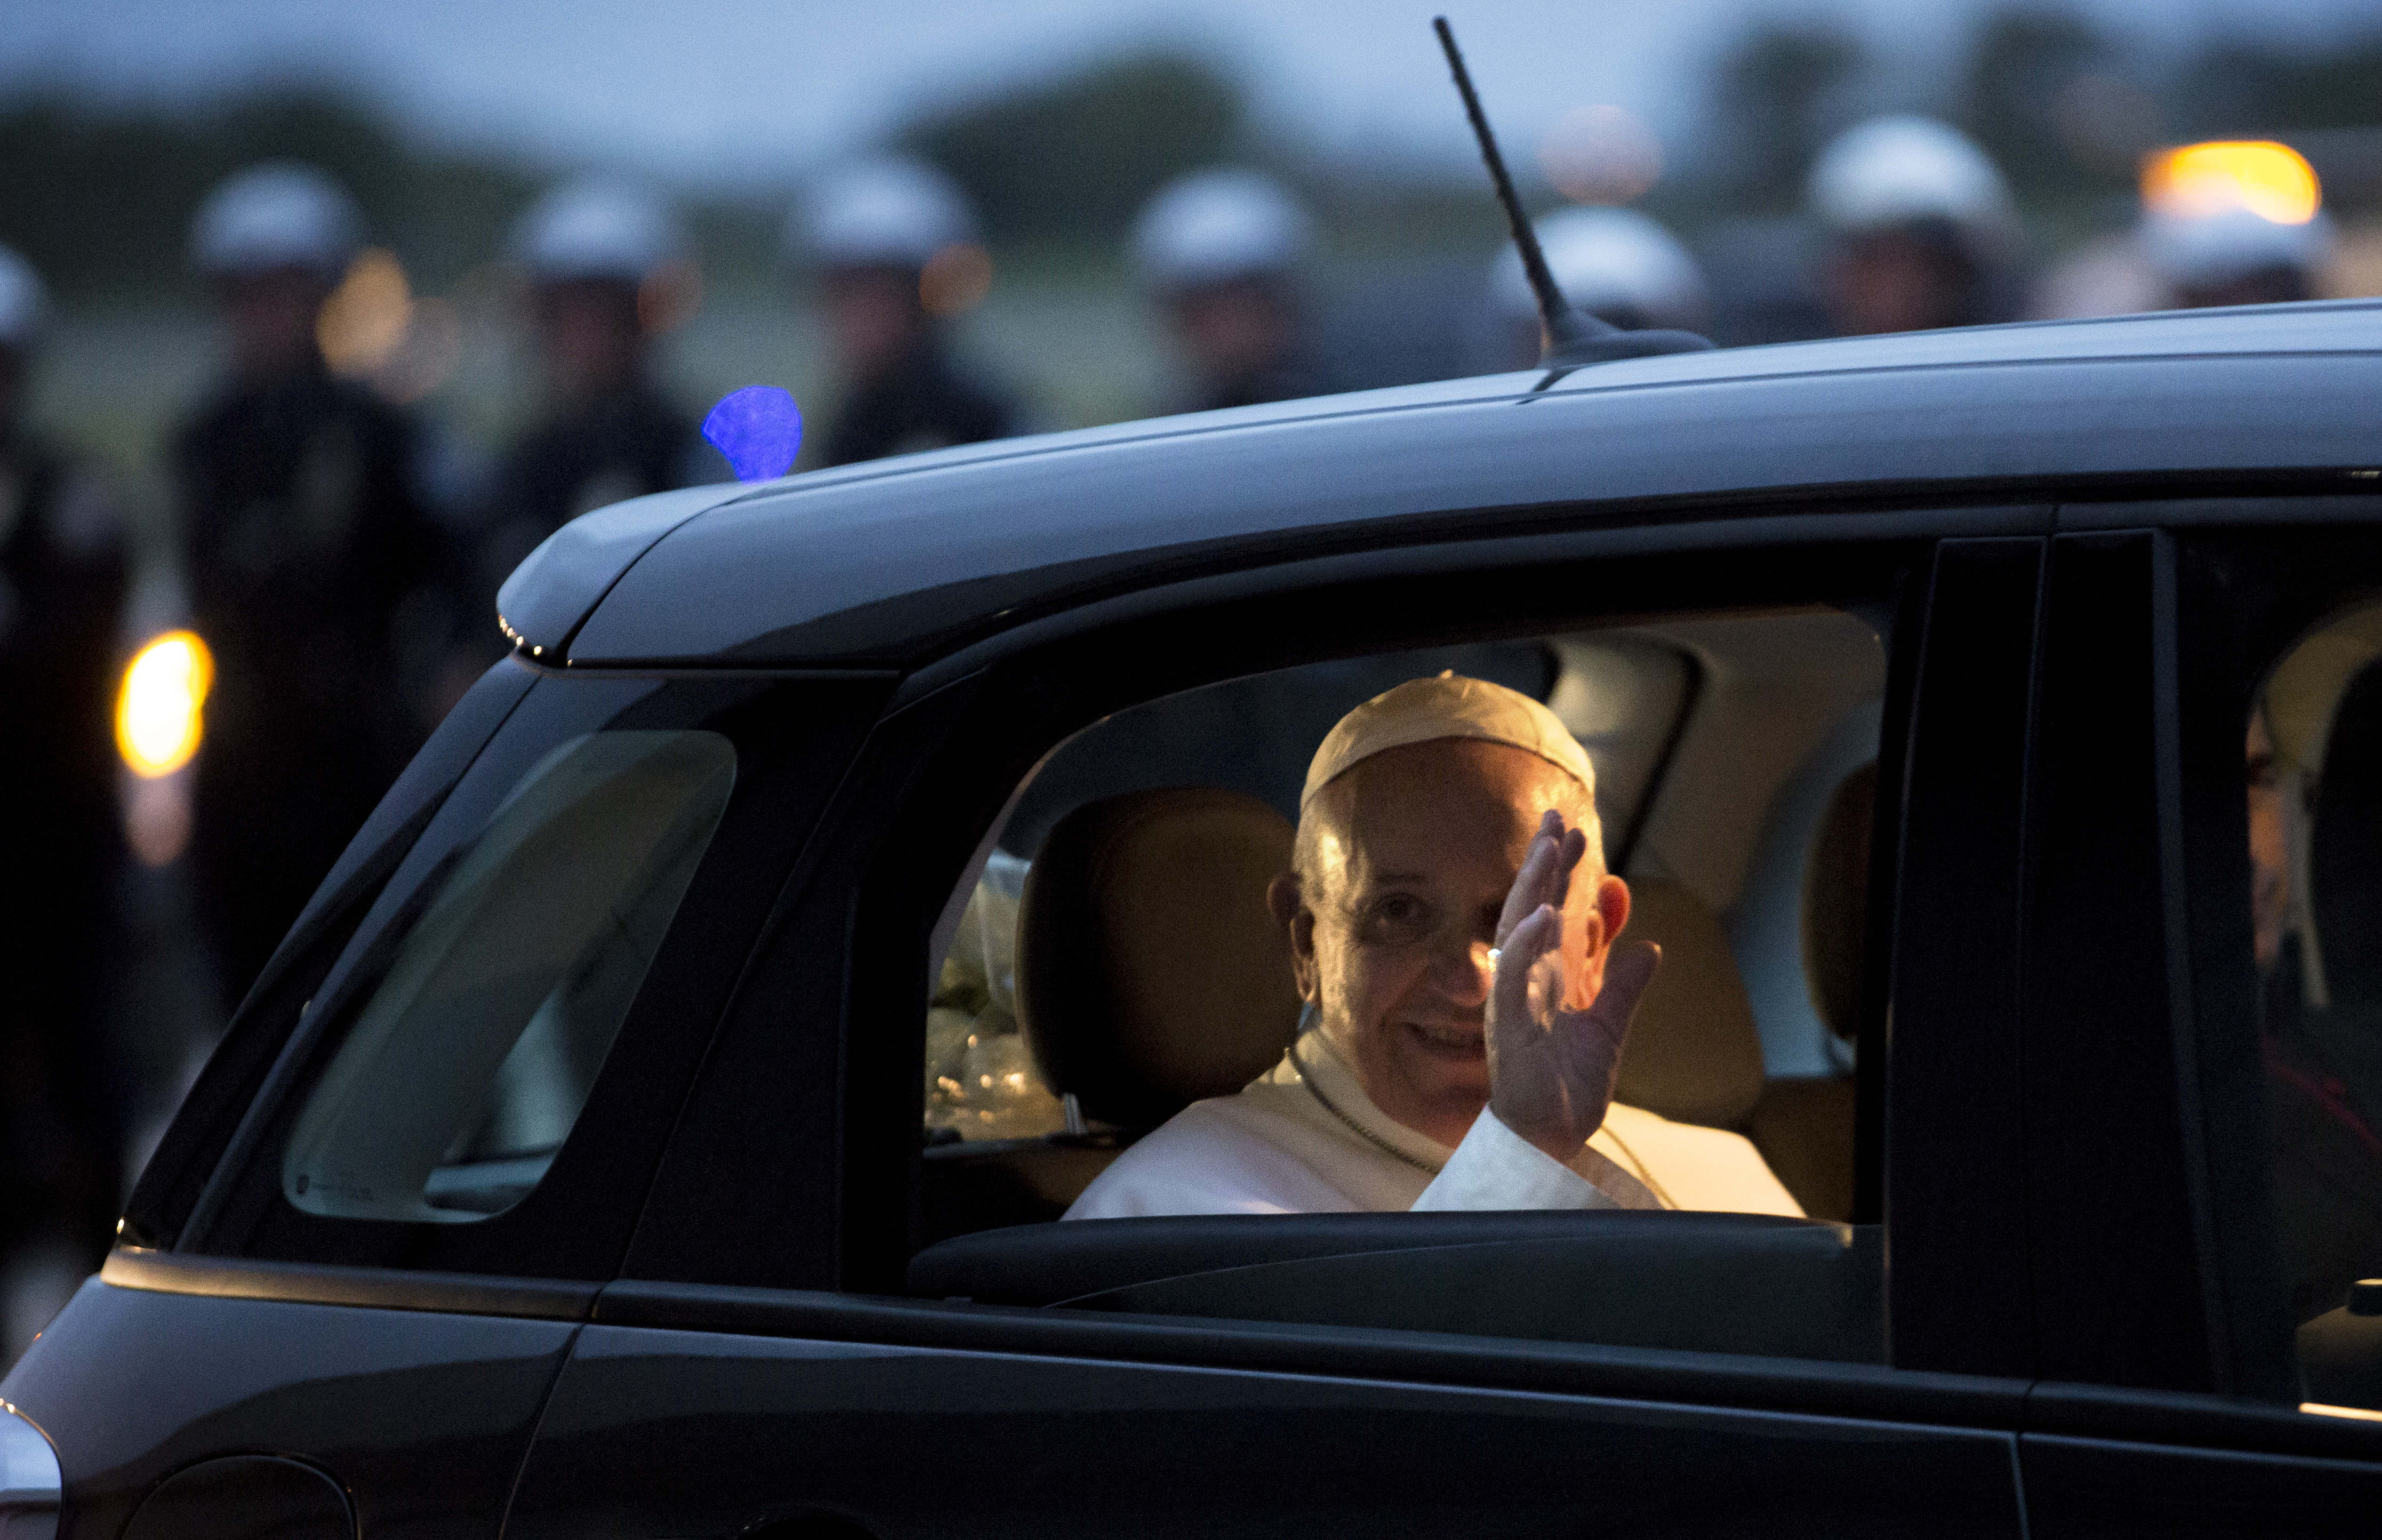 Pope Francis waves from his Fiat as he prepares to depart for Rome at Philadelphia International Airport in Philadelphia on Sunday, Sept. 27, 2015. (AP Photo/Laurence Kesterson)